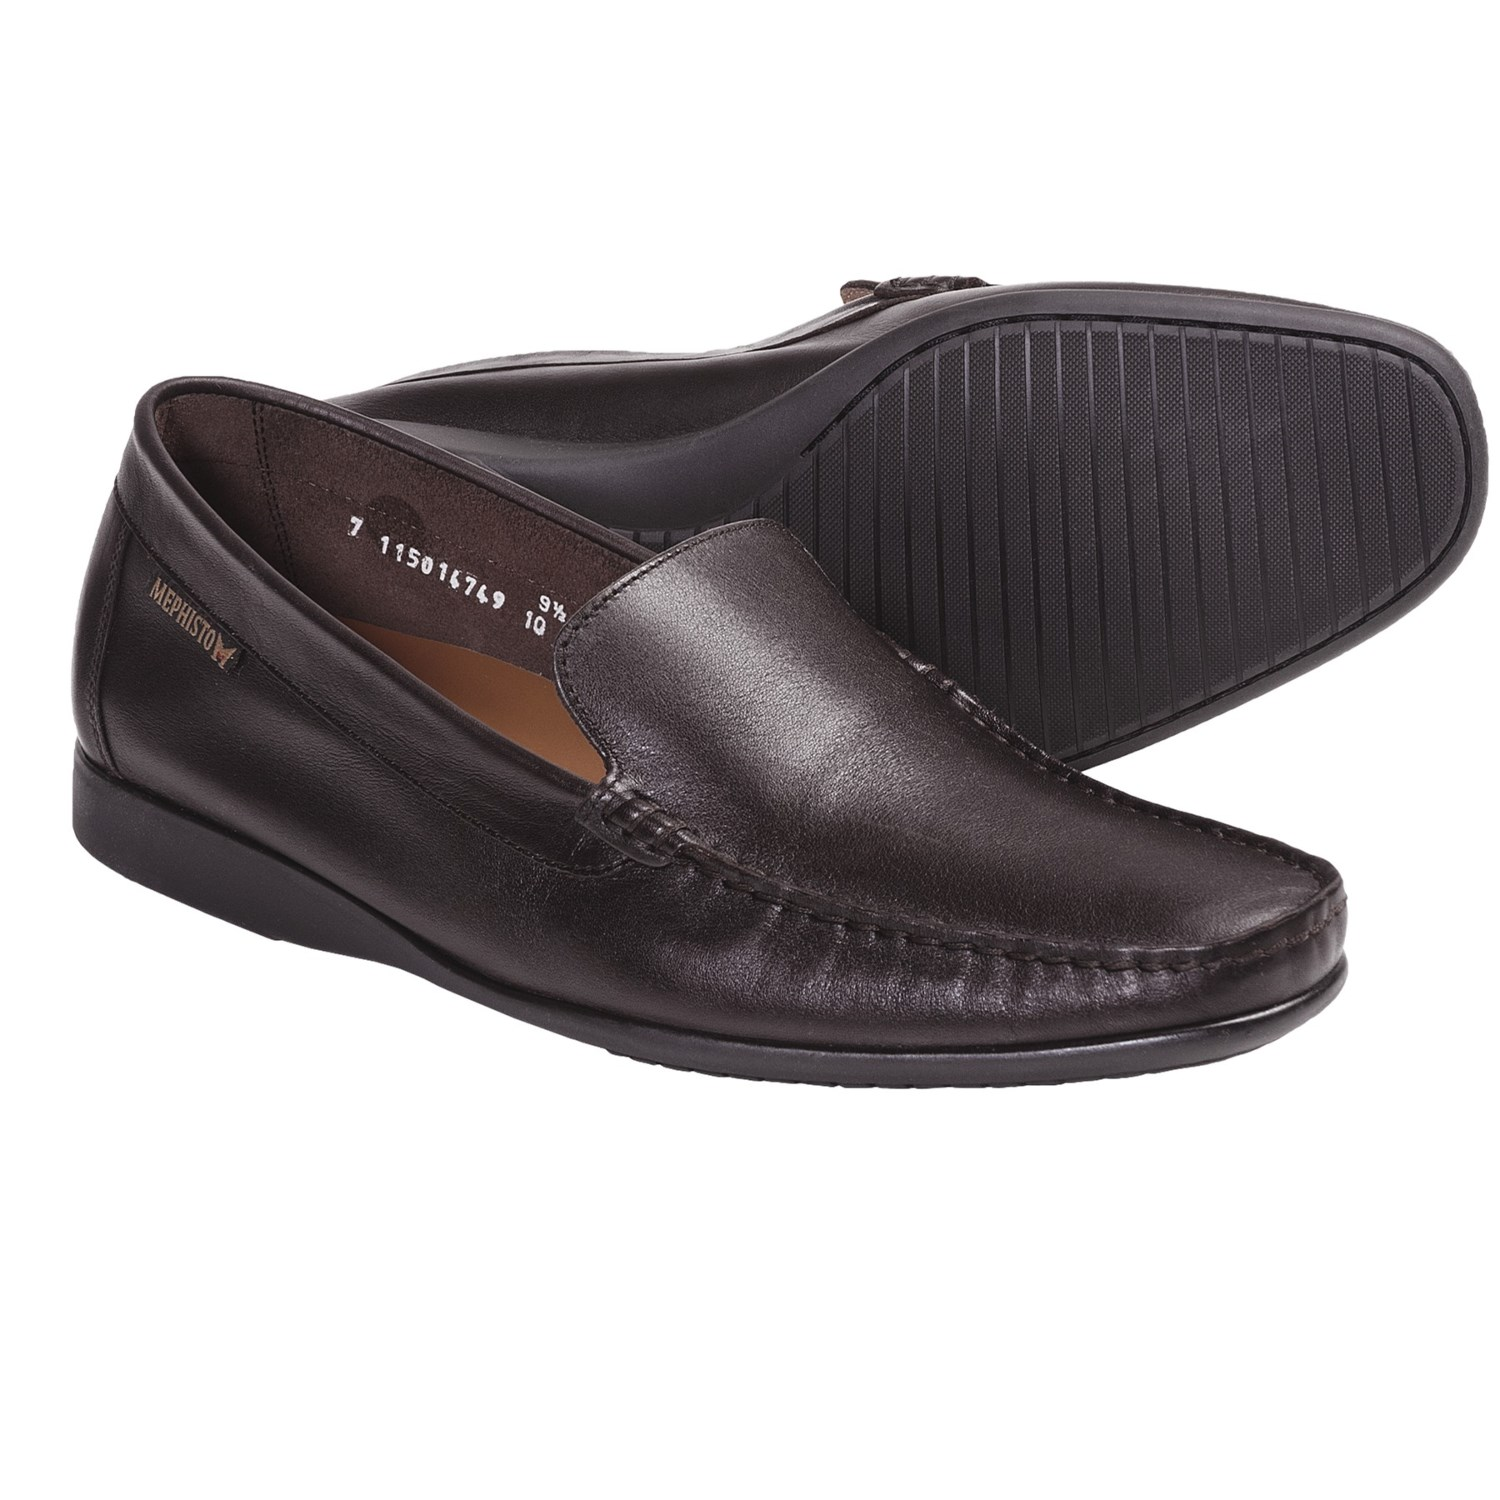 Mephisto Mens Shoes Clearance